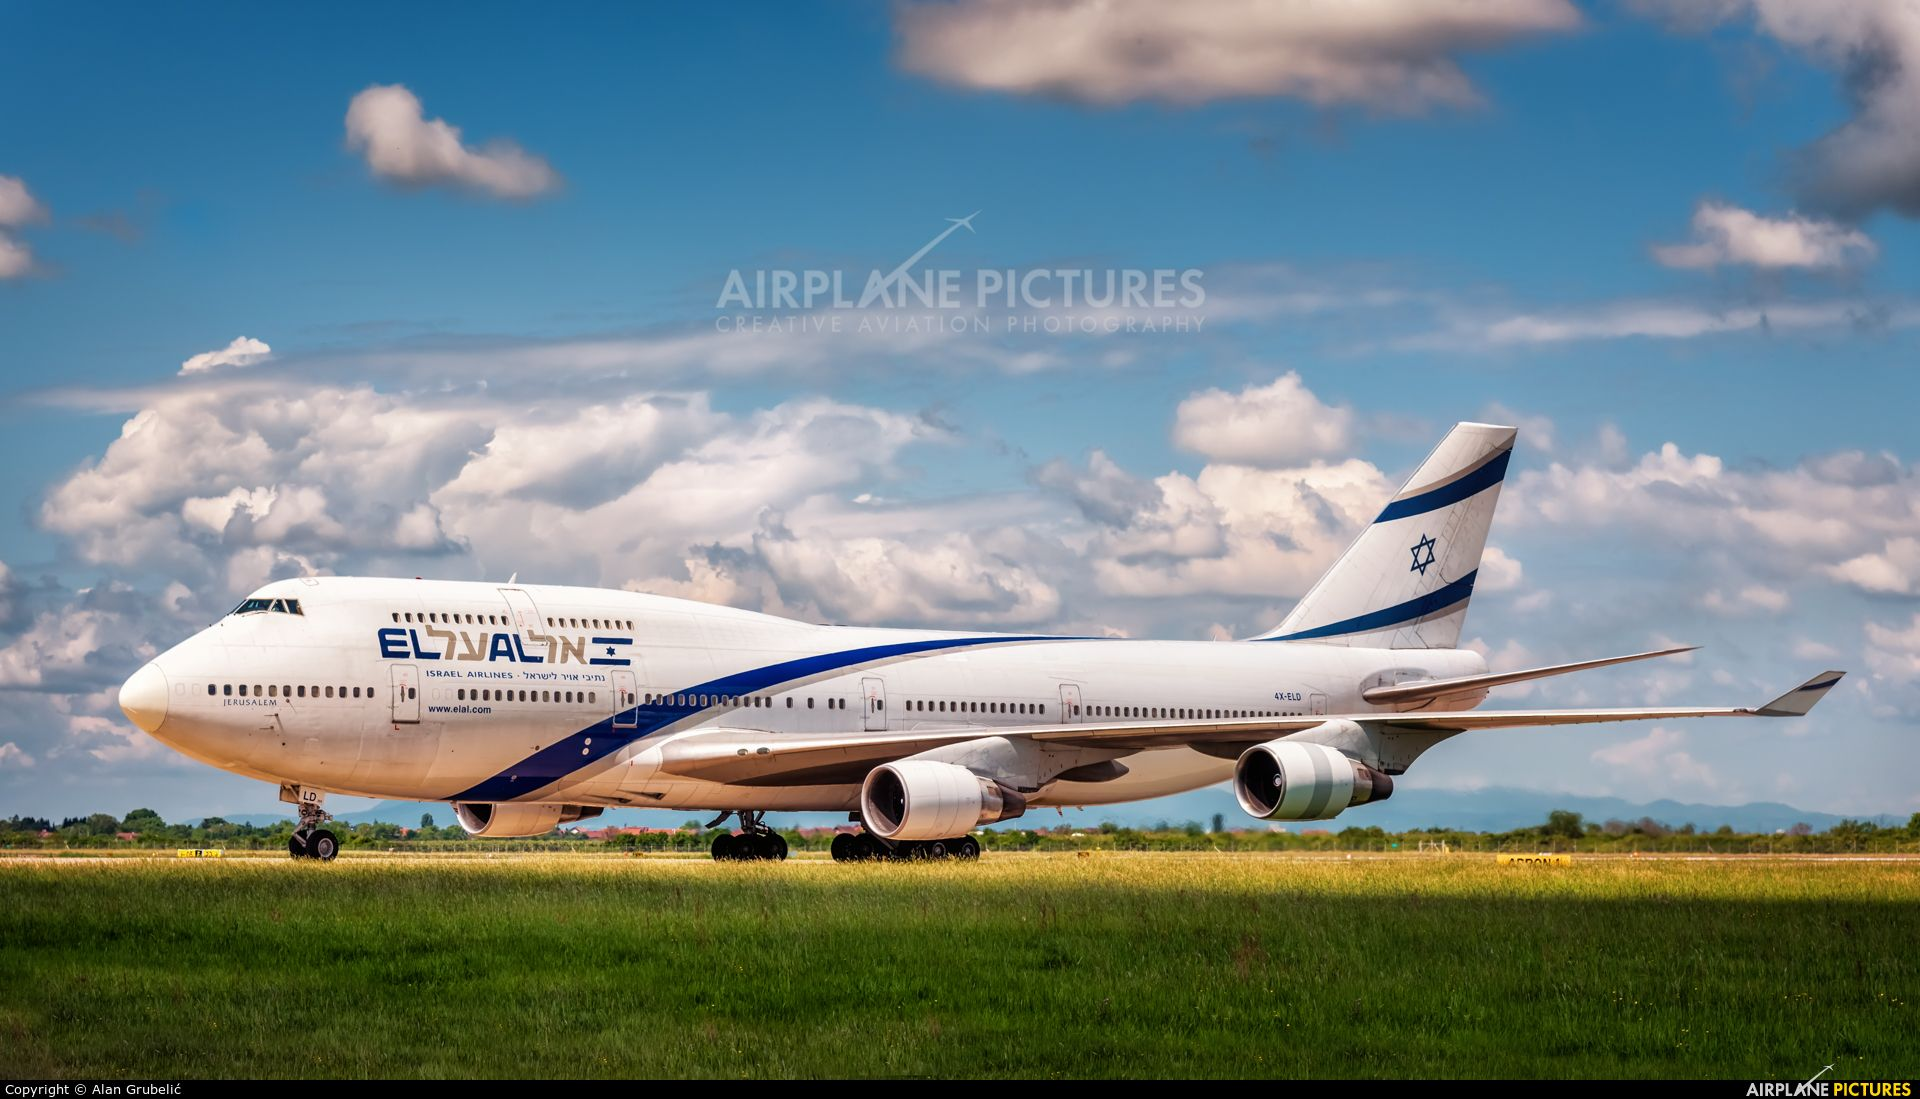 El Al Israel Airlines 4x Eld Aircraft At Zagreb Photo Boeing 747 400 Boeing 747 Airlines